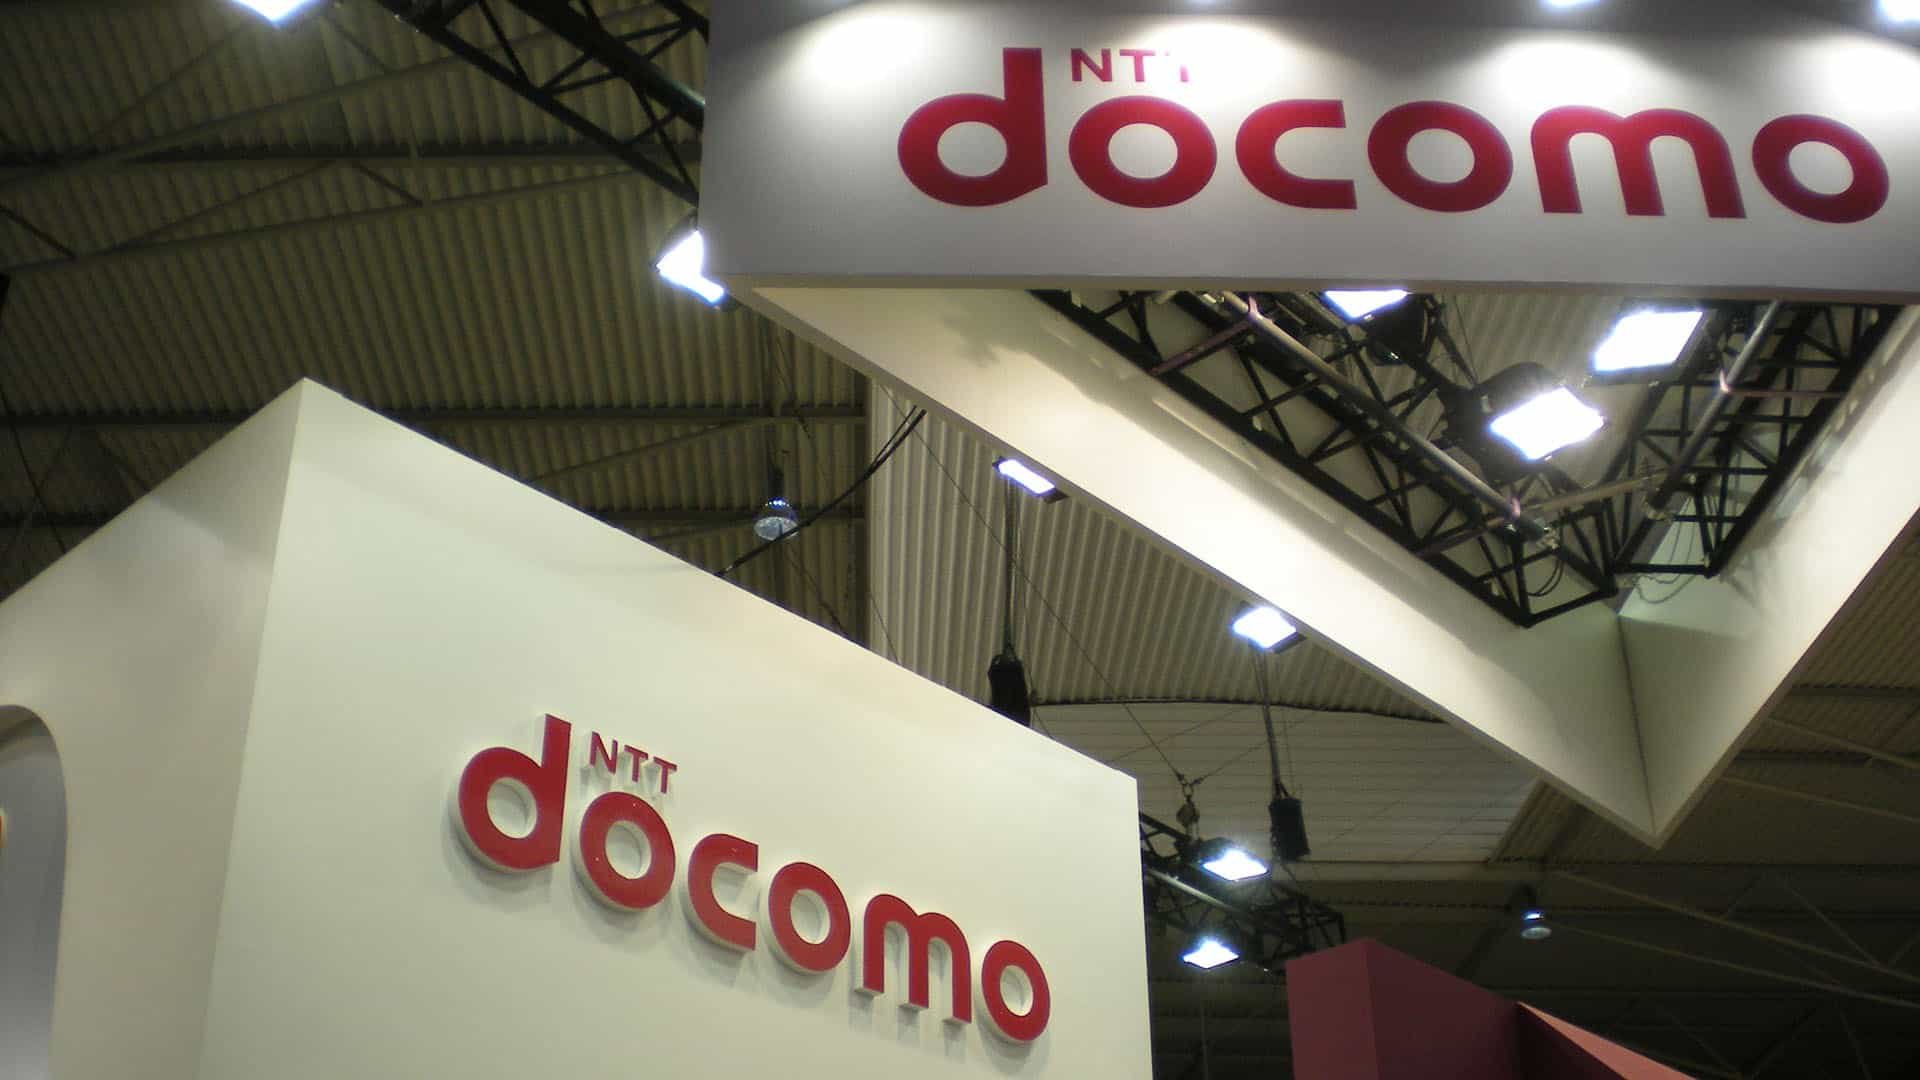 Japan's Largest Telephone Company NTT DoCoMo Is Attempting To Expand Abroad